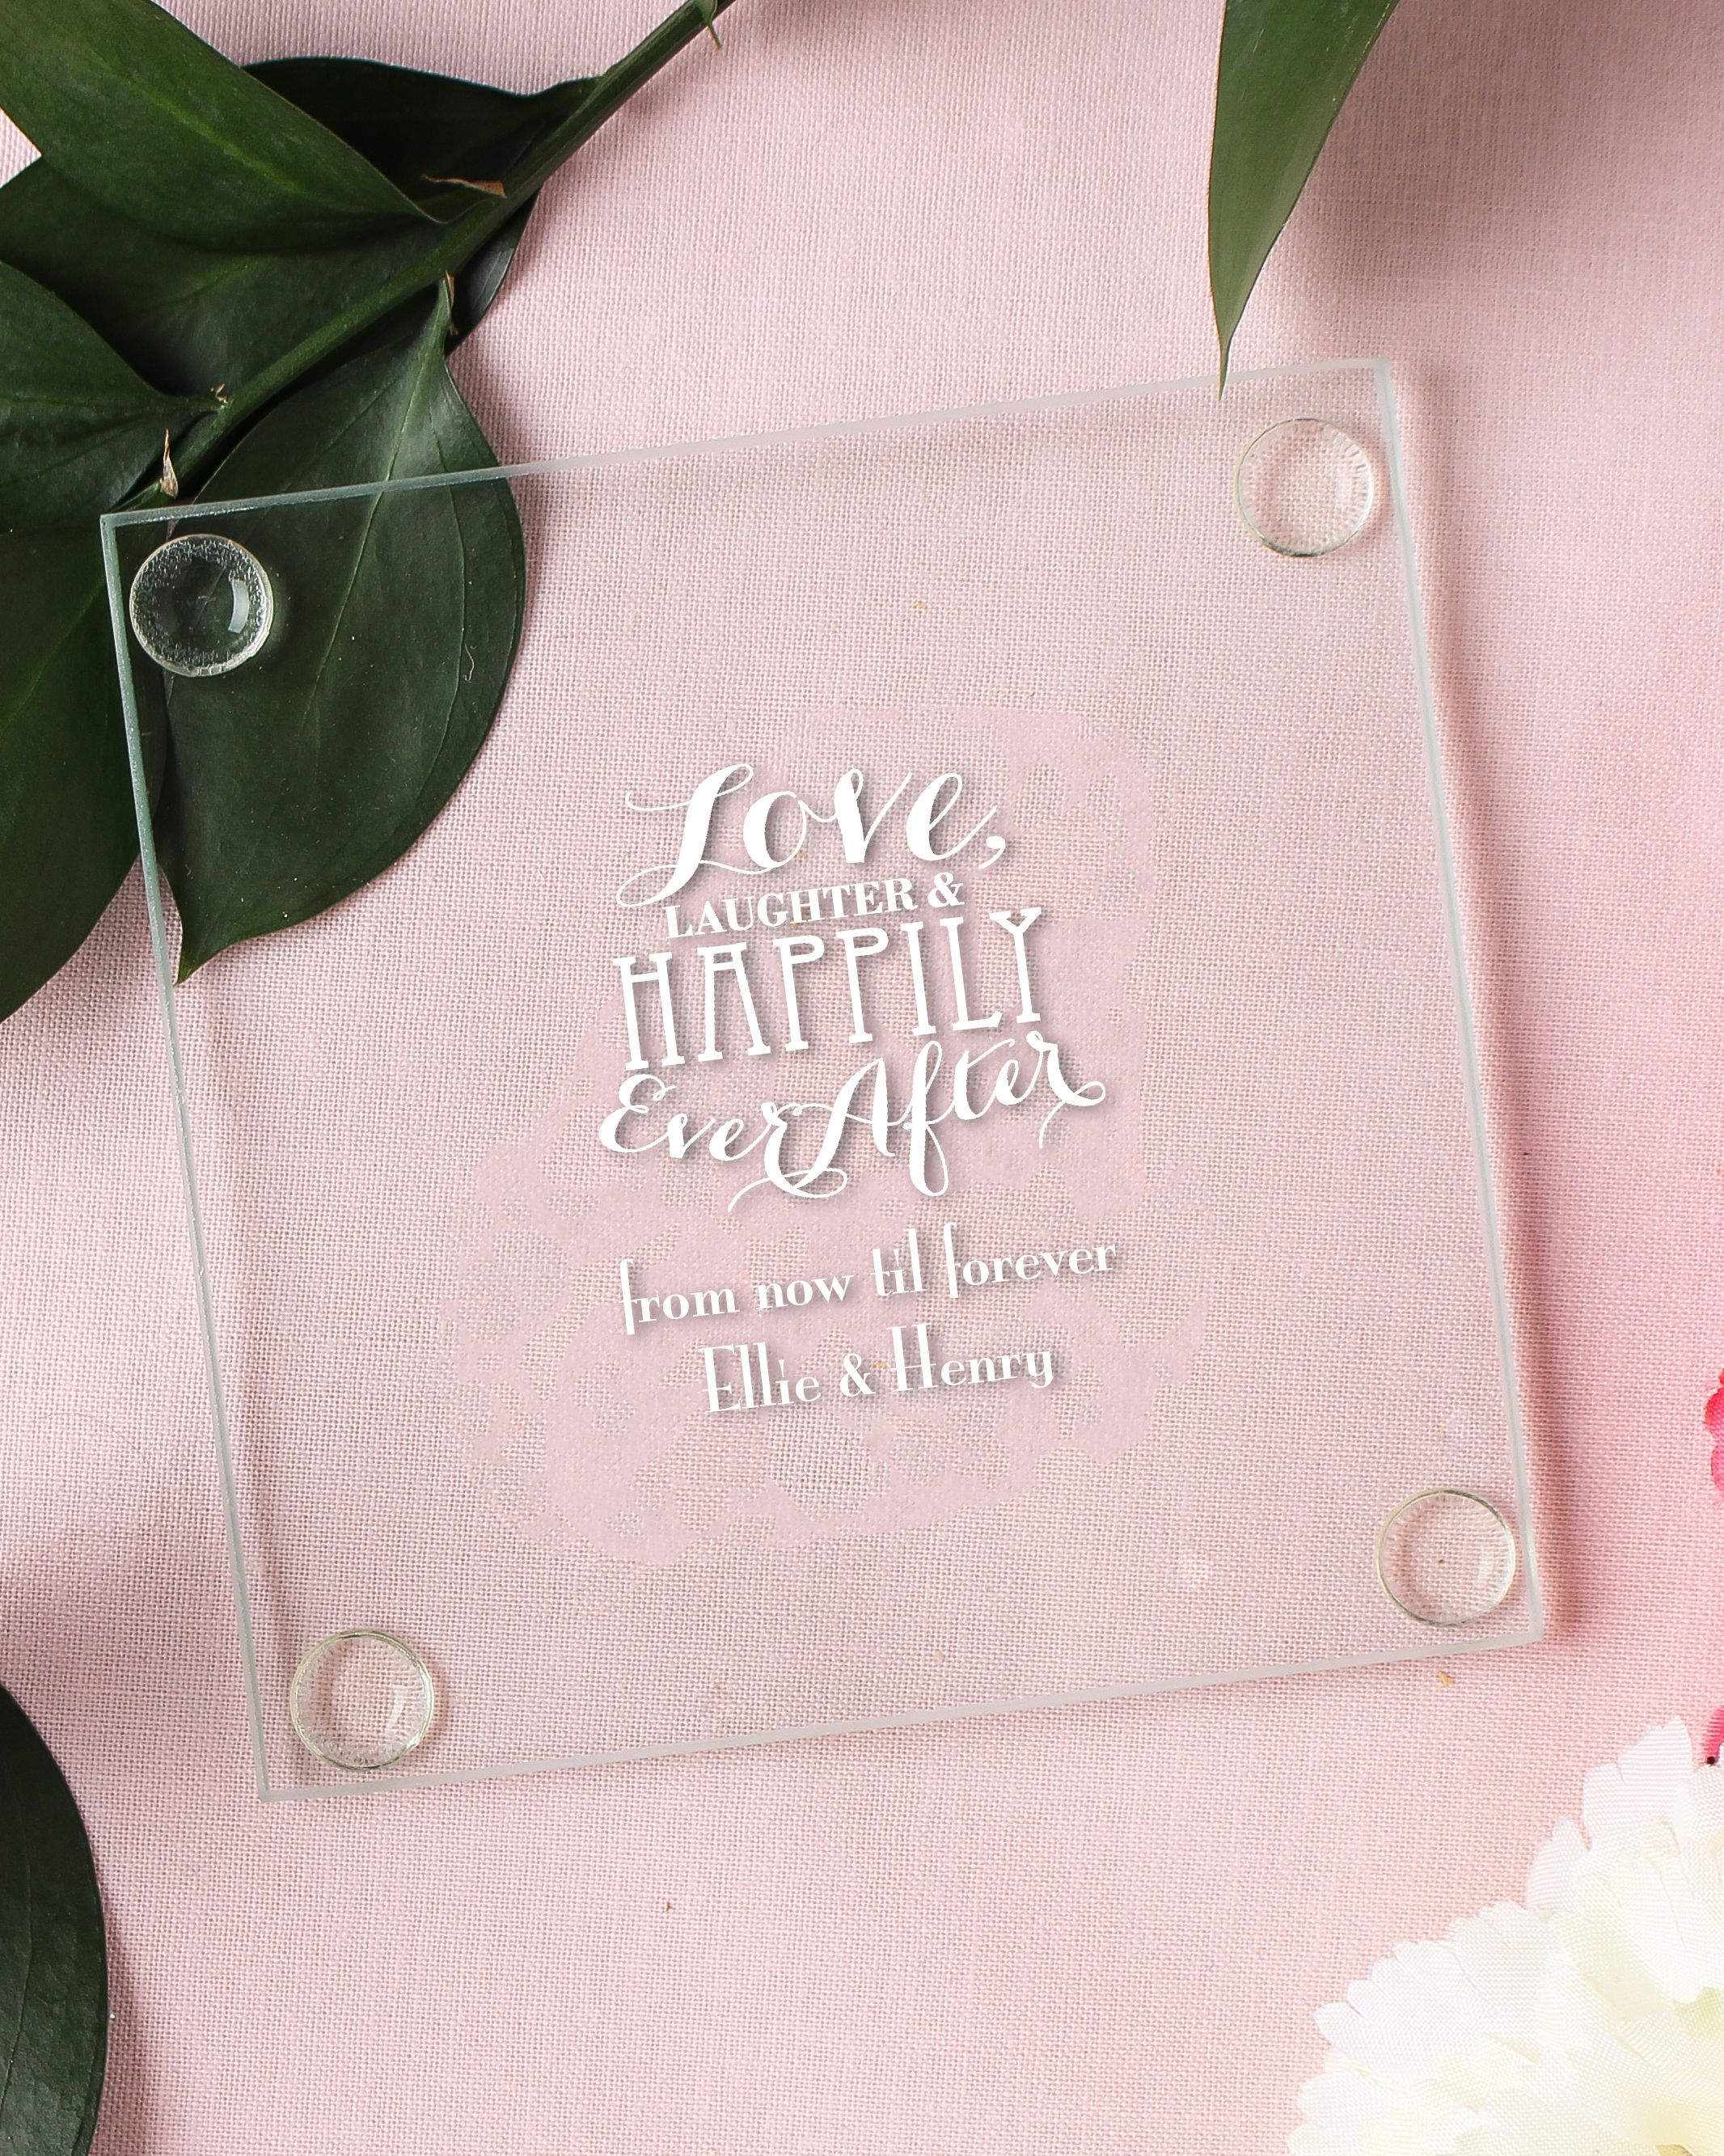 Make Your Wedding An Affair To Remember With These Personalized Gl Coasters Use Them As Part Of Table Setting And Send Home Favors